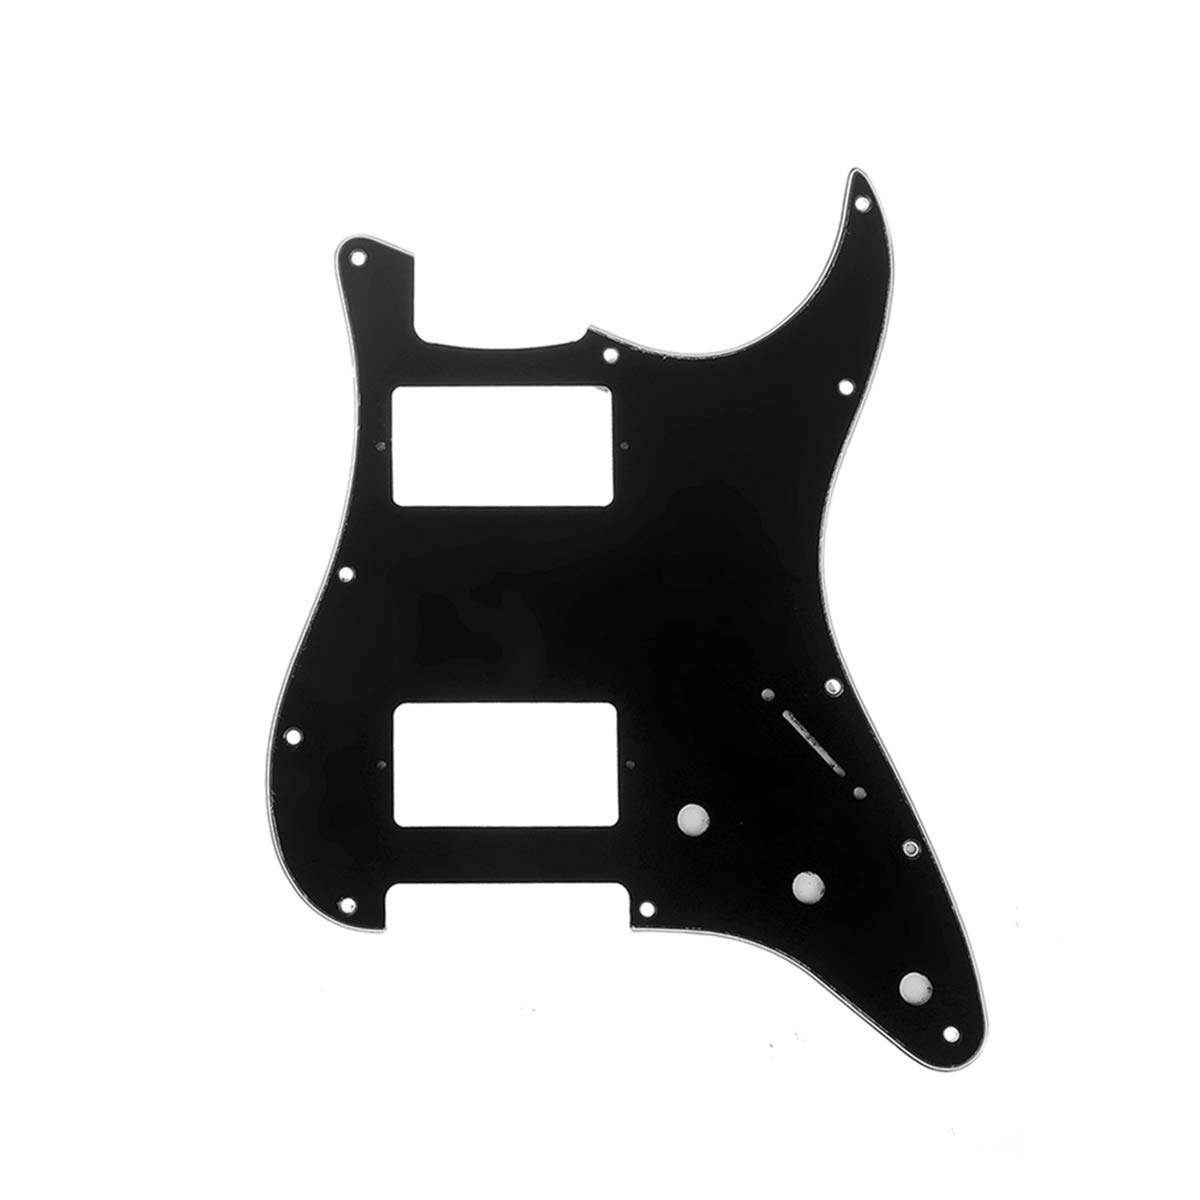 Musiclily Pro 11 Hole HH Guitar Pickguard Humbucker Scratch Plate for USA/Mexican Fender Standard Stratocaster Strat ST Modern Style, 3Ply Black MX1379BK